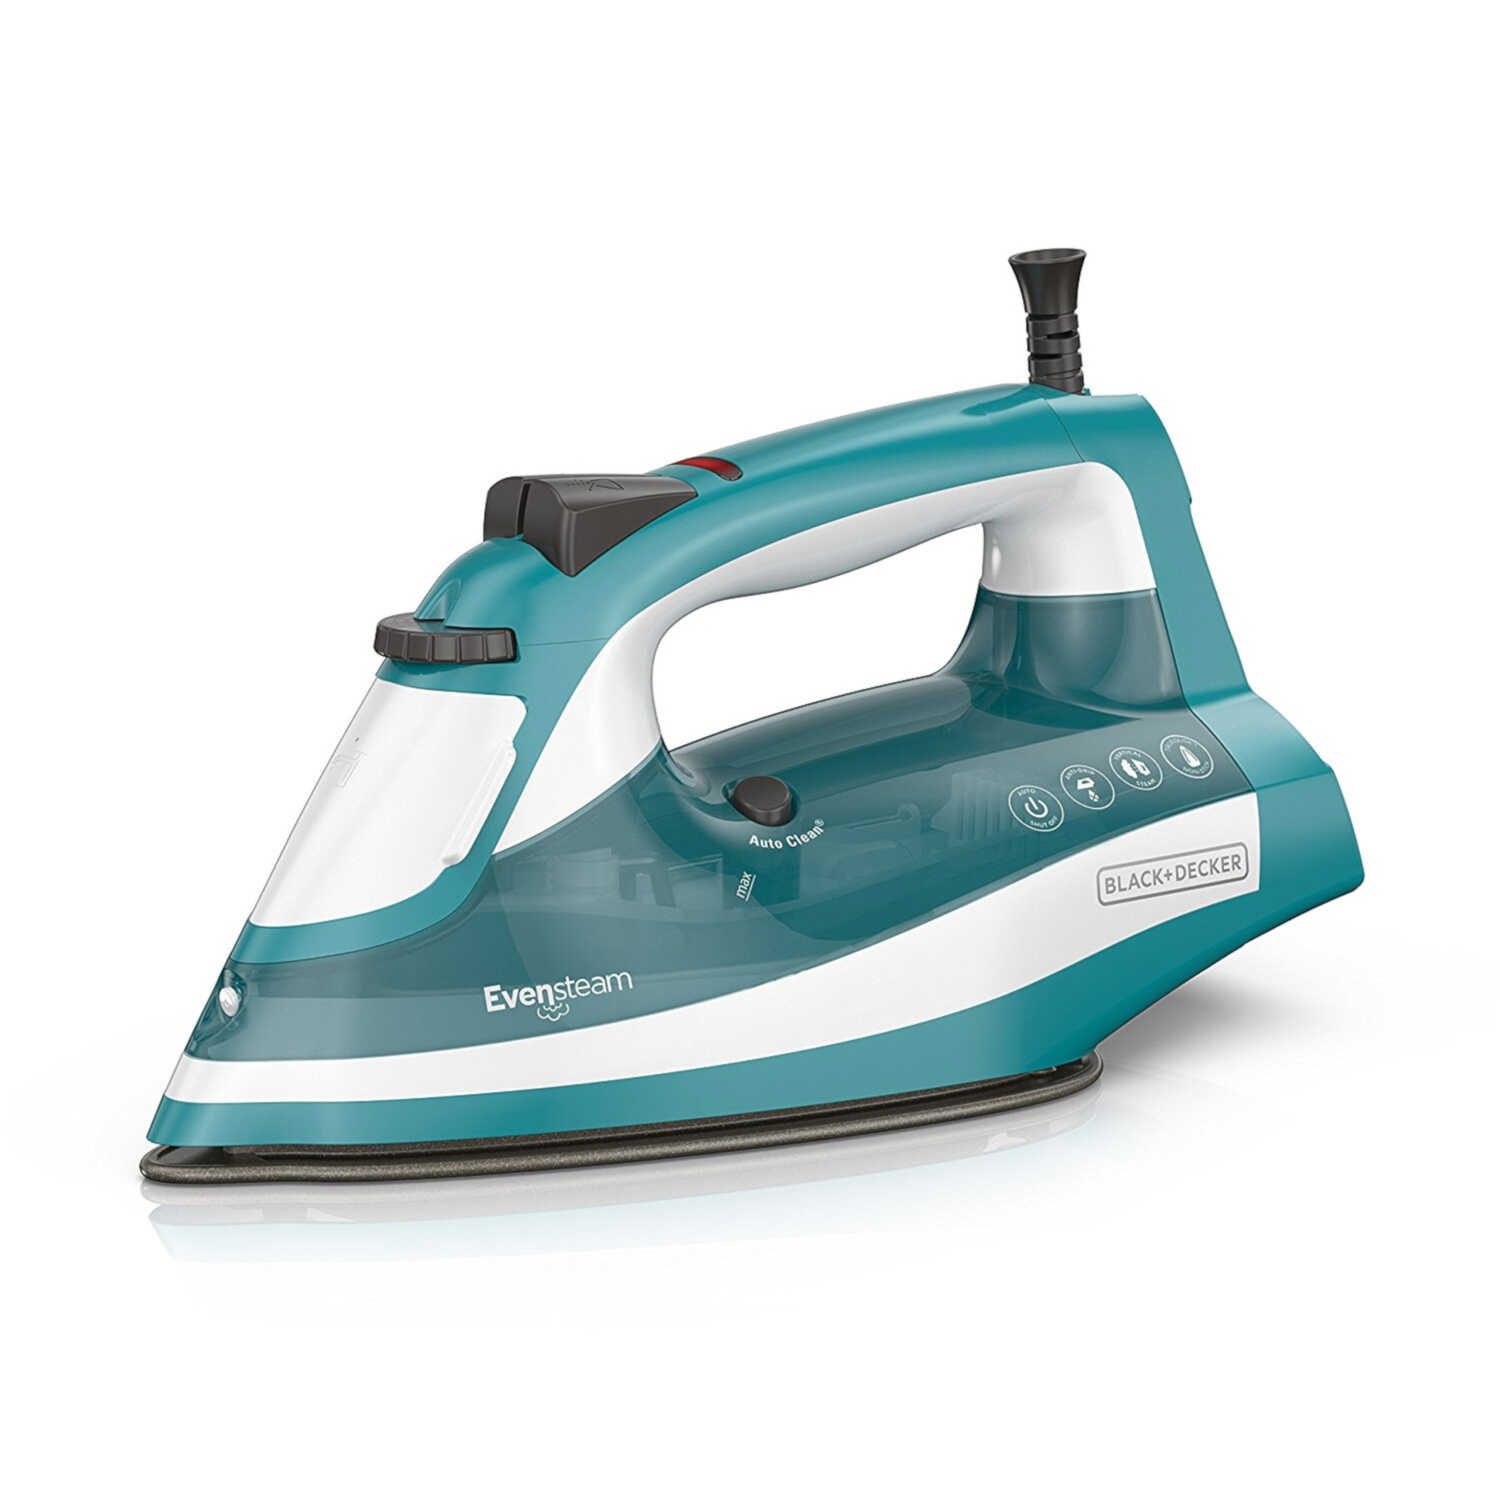 Black+Decker  Xpress Steam TrueGlide  10.82 oz. Steam Iron